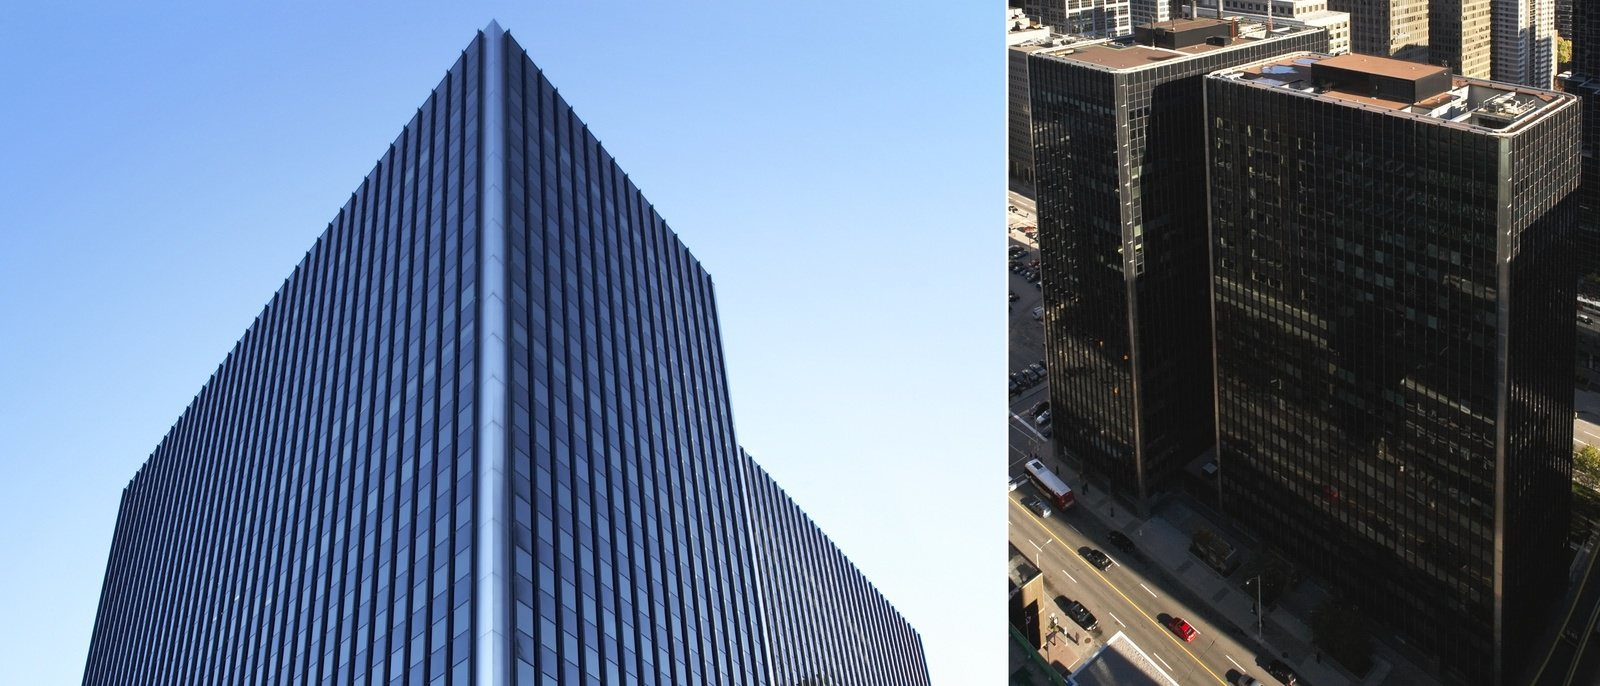 A tall black building that is located next to one that looks nearly identical to it forming a T shap